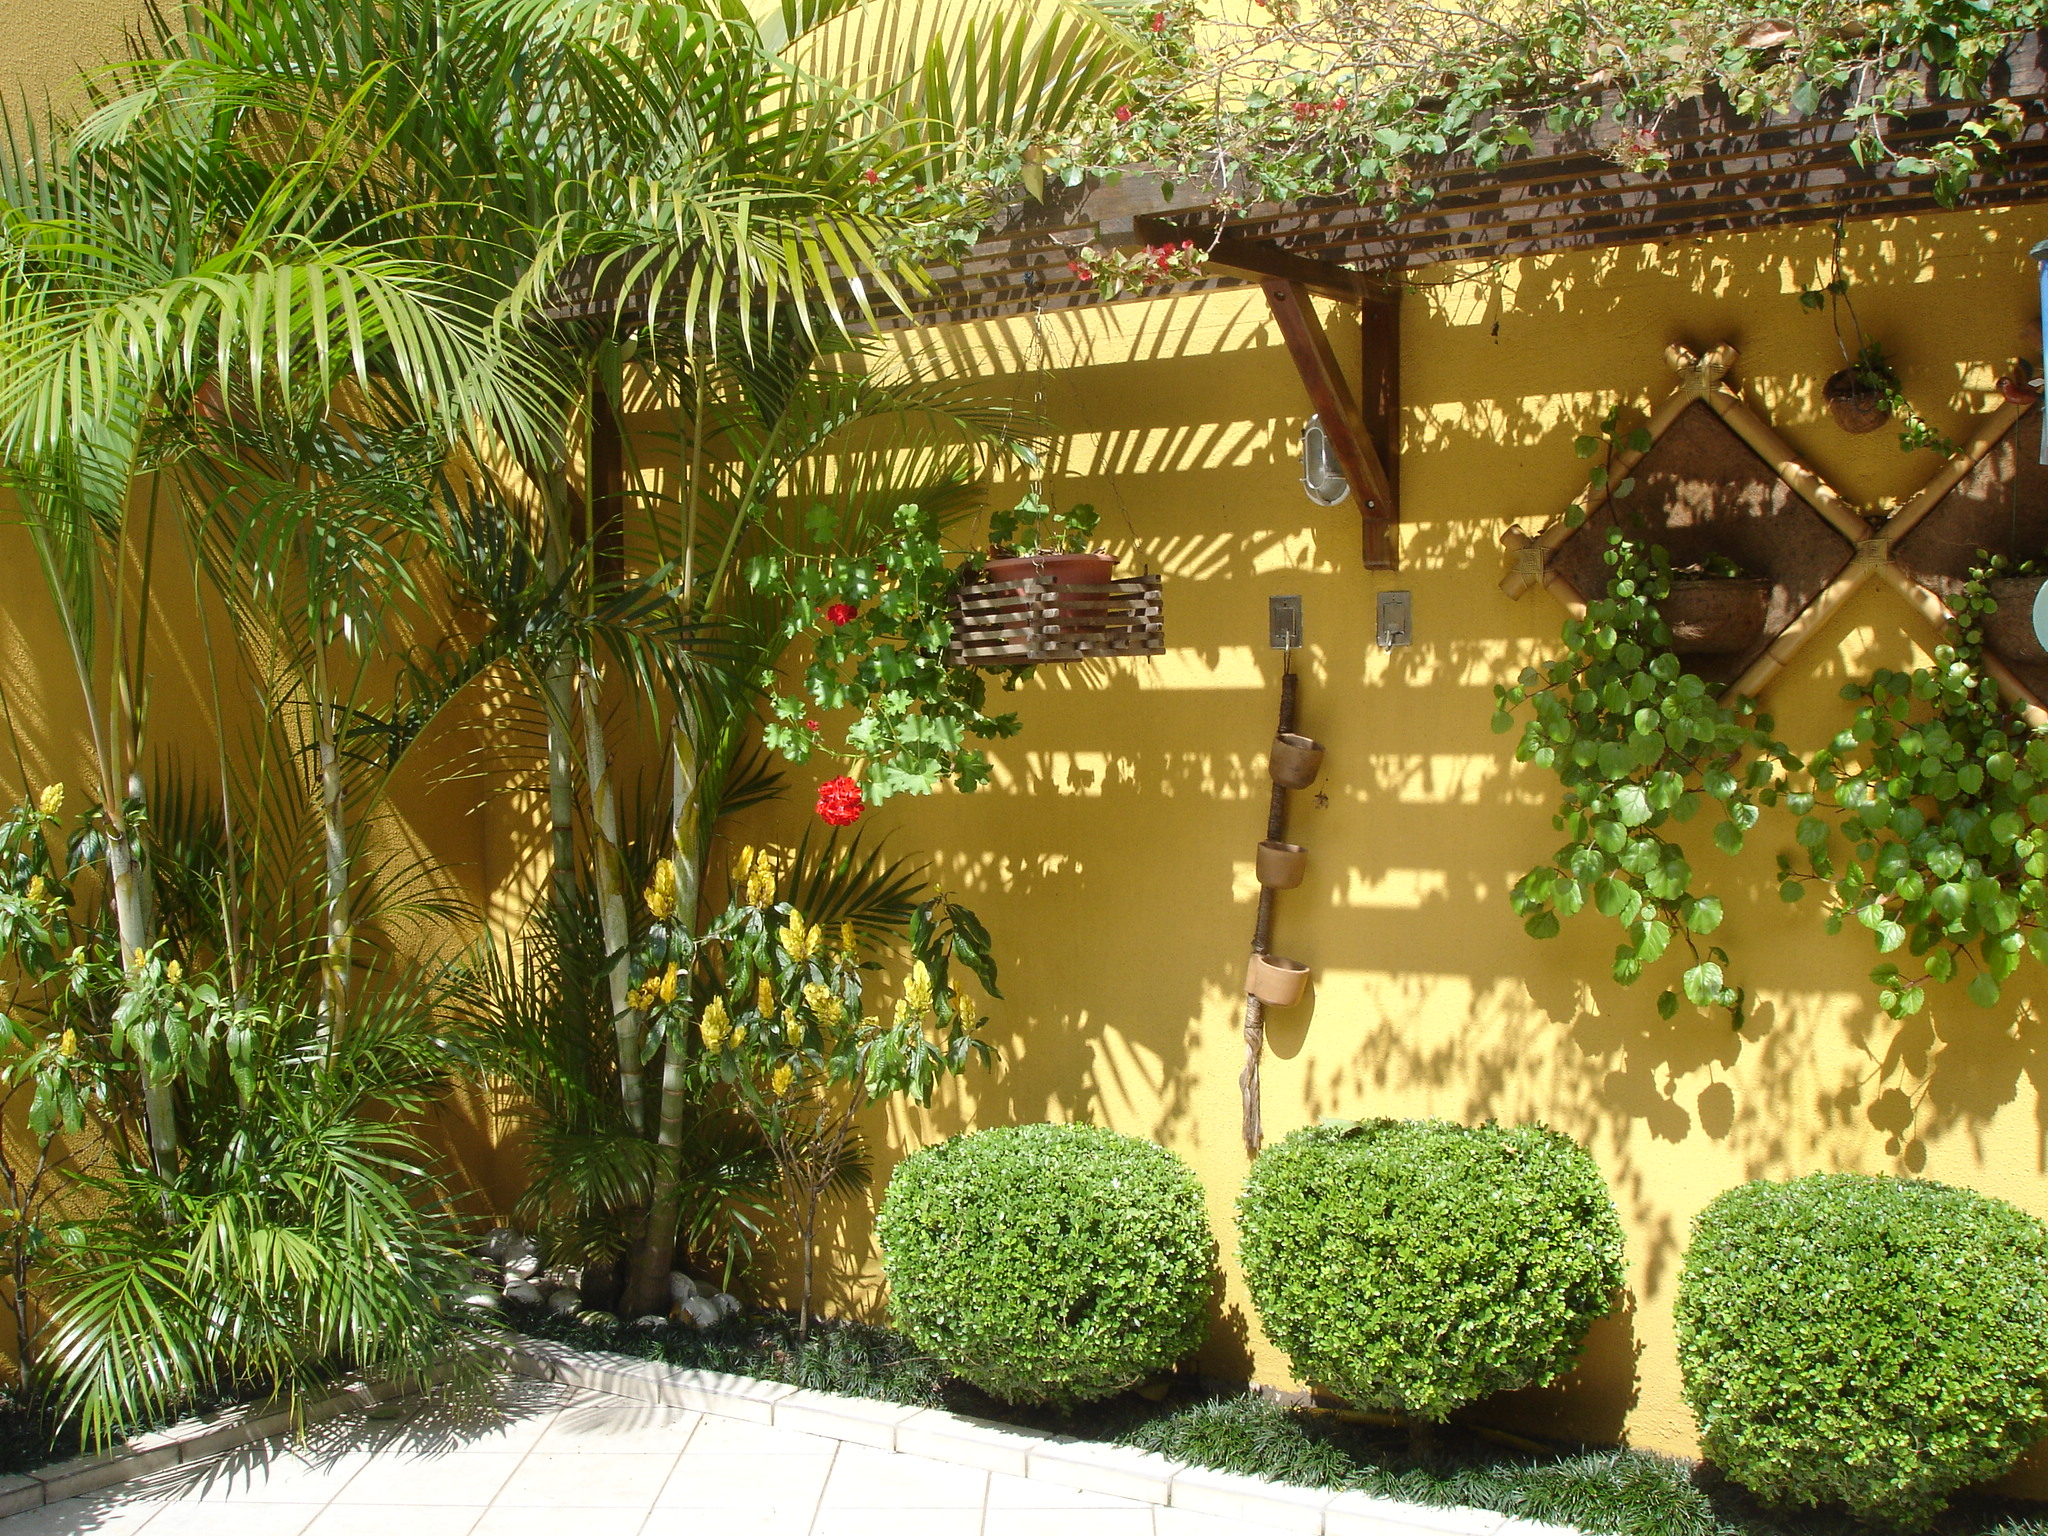 Jardines r sticos tendencia e ideas hoy lowcost for Ideas decoracion jardines exteriores